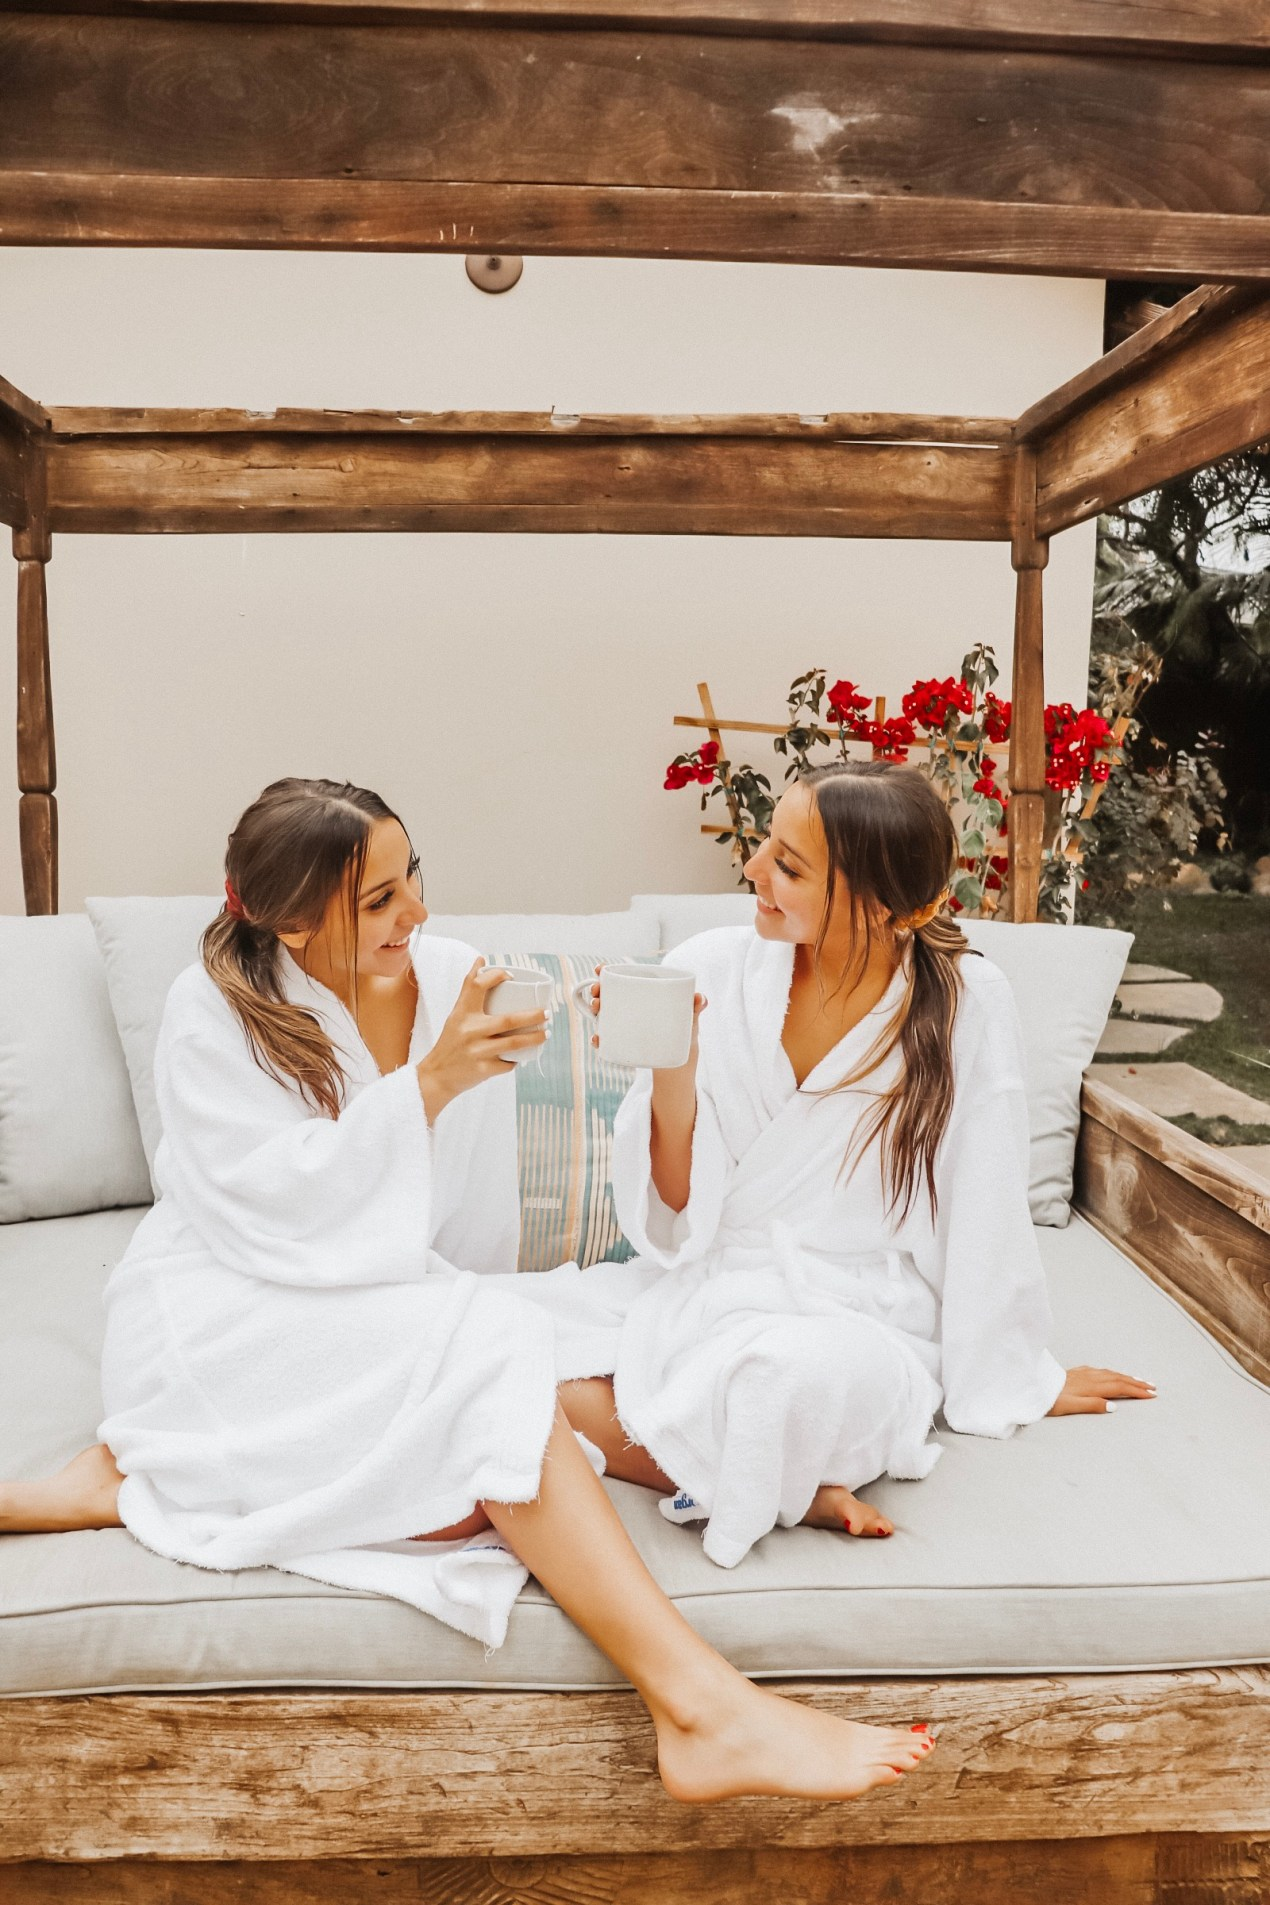 Four Moons Spa Encinitas - The Twins of Travel